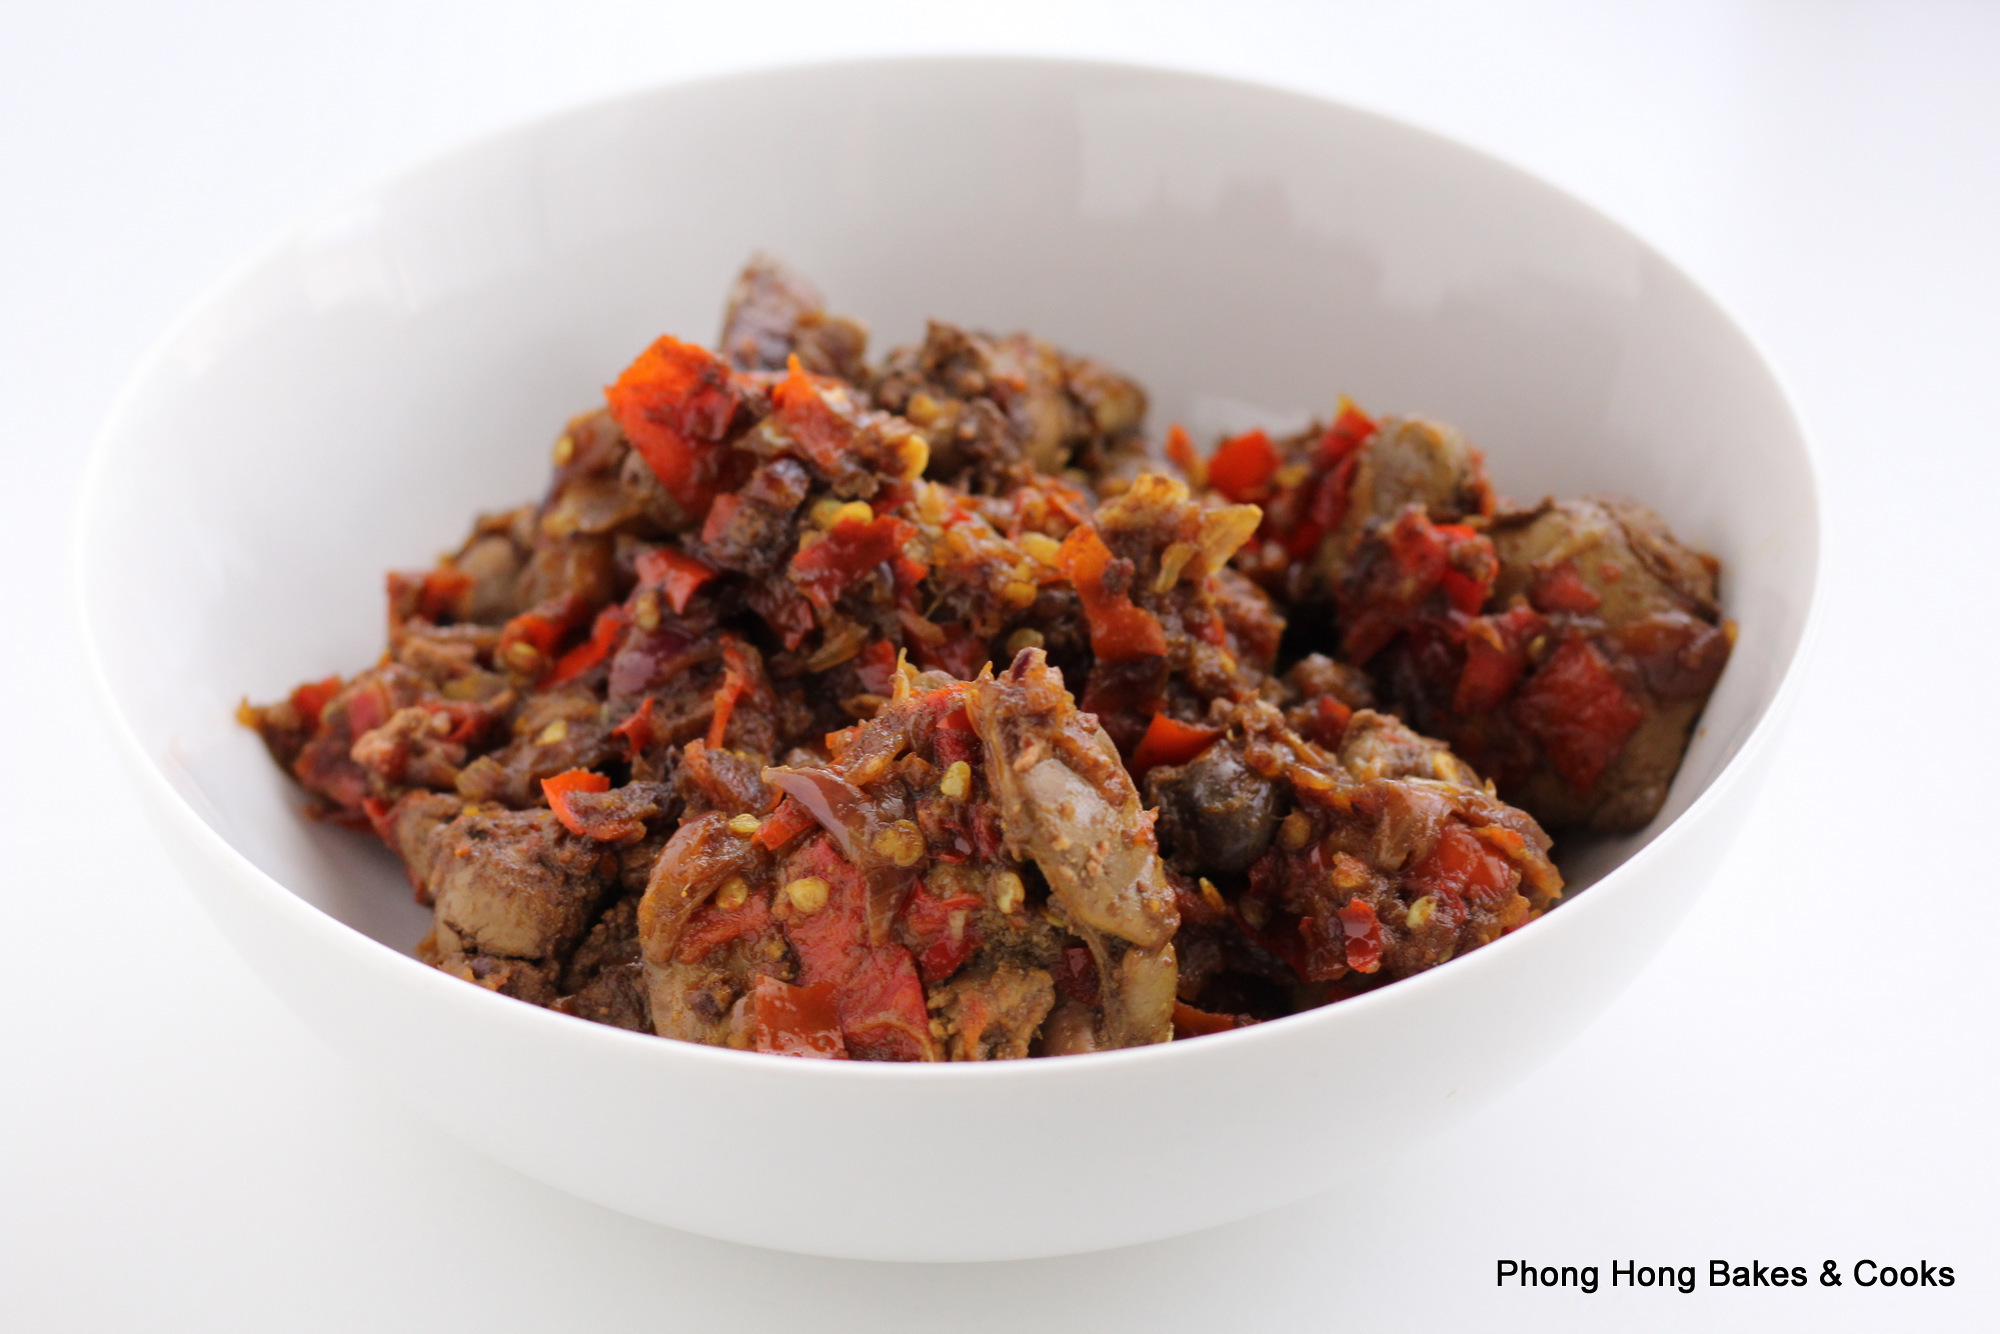 Fried Chicken Liver with Chilies (Hati Ayam Goreng Cili)